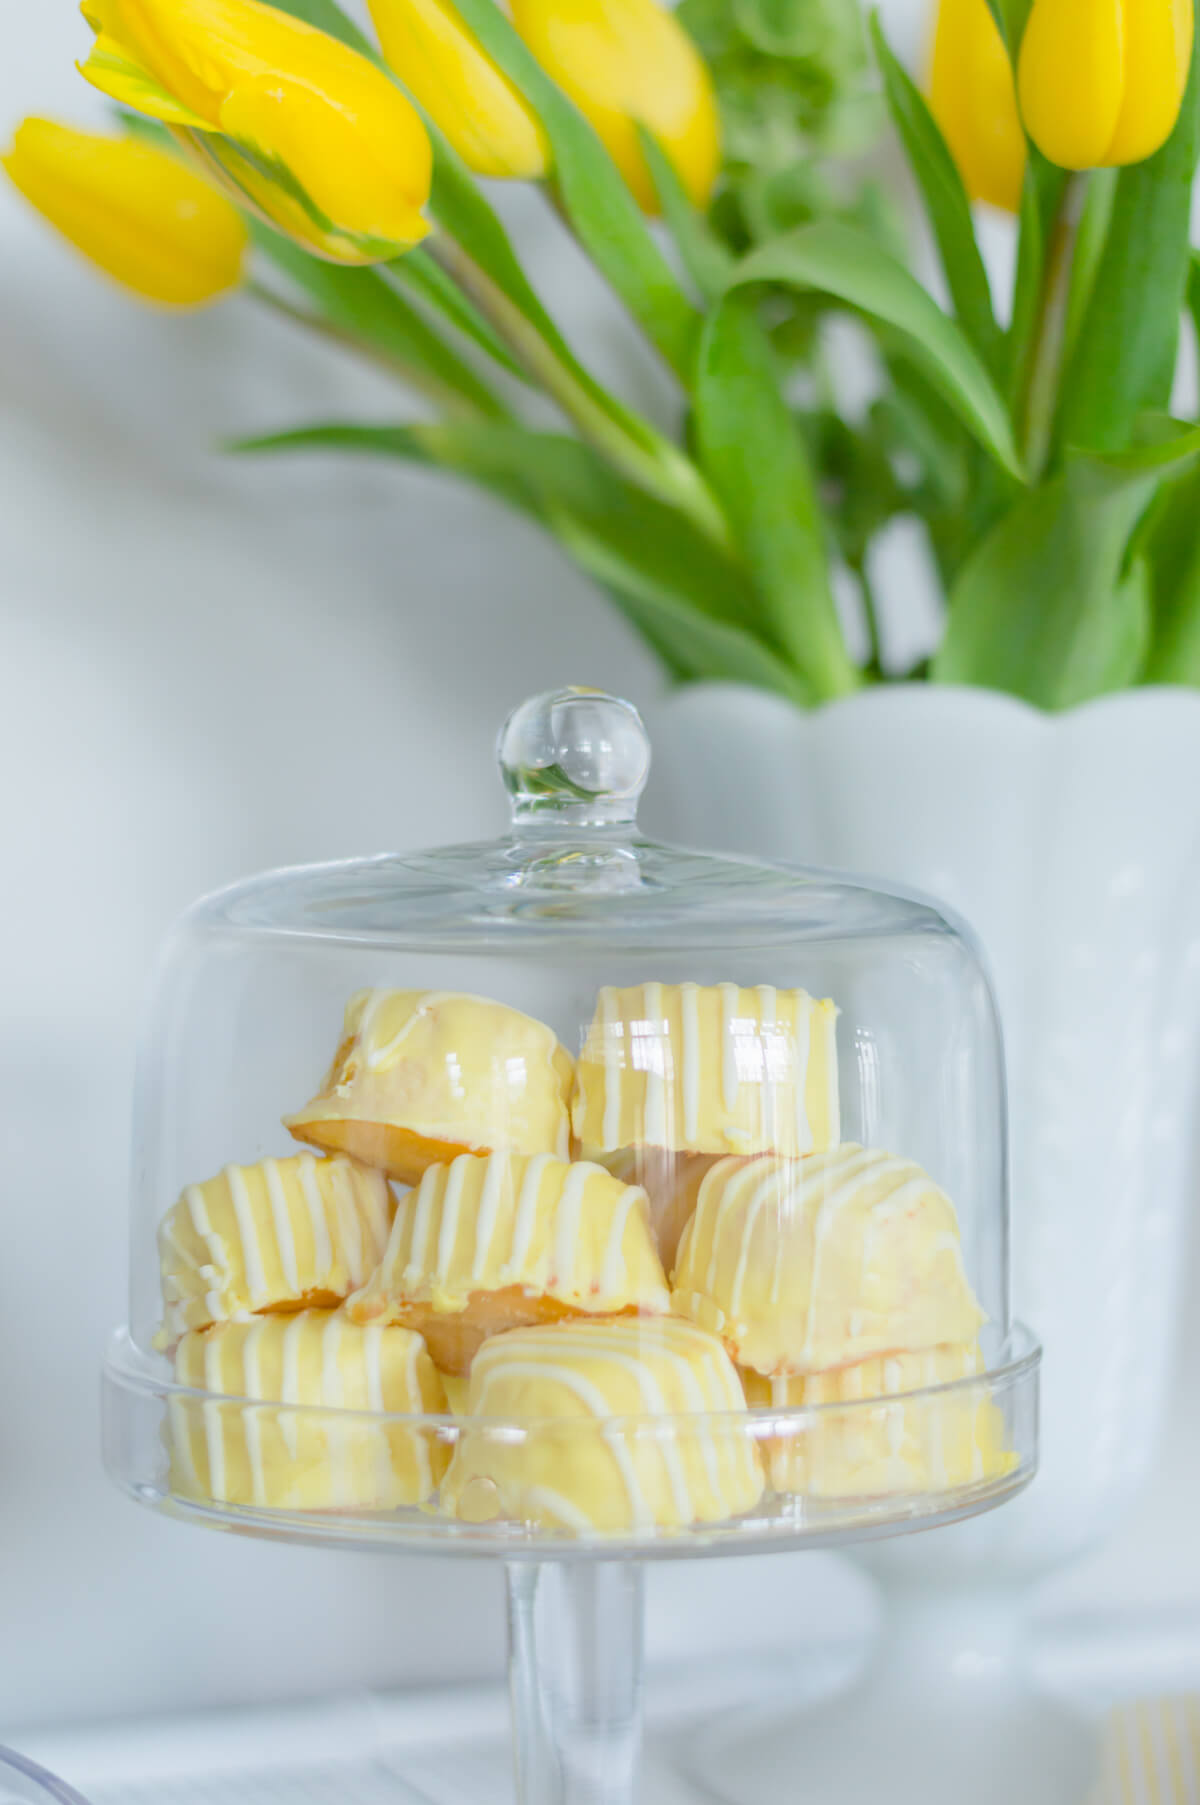 Lemon cakes | yellow tulips |